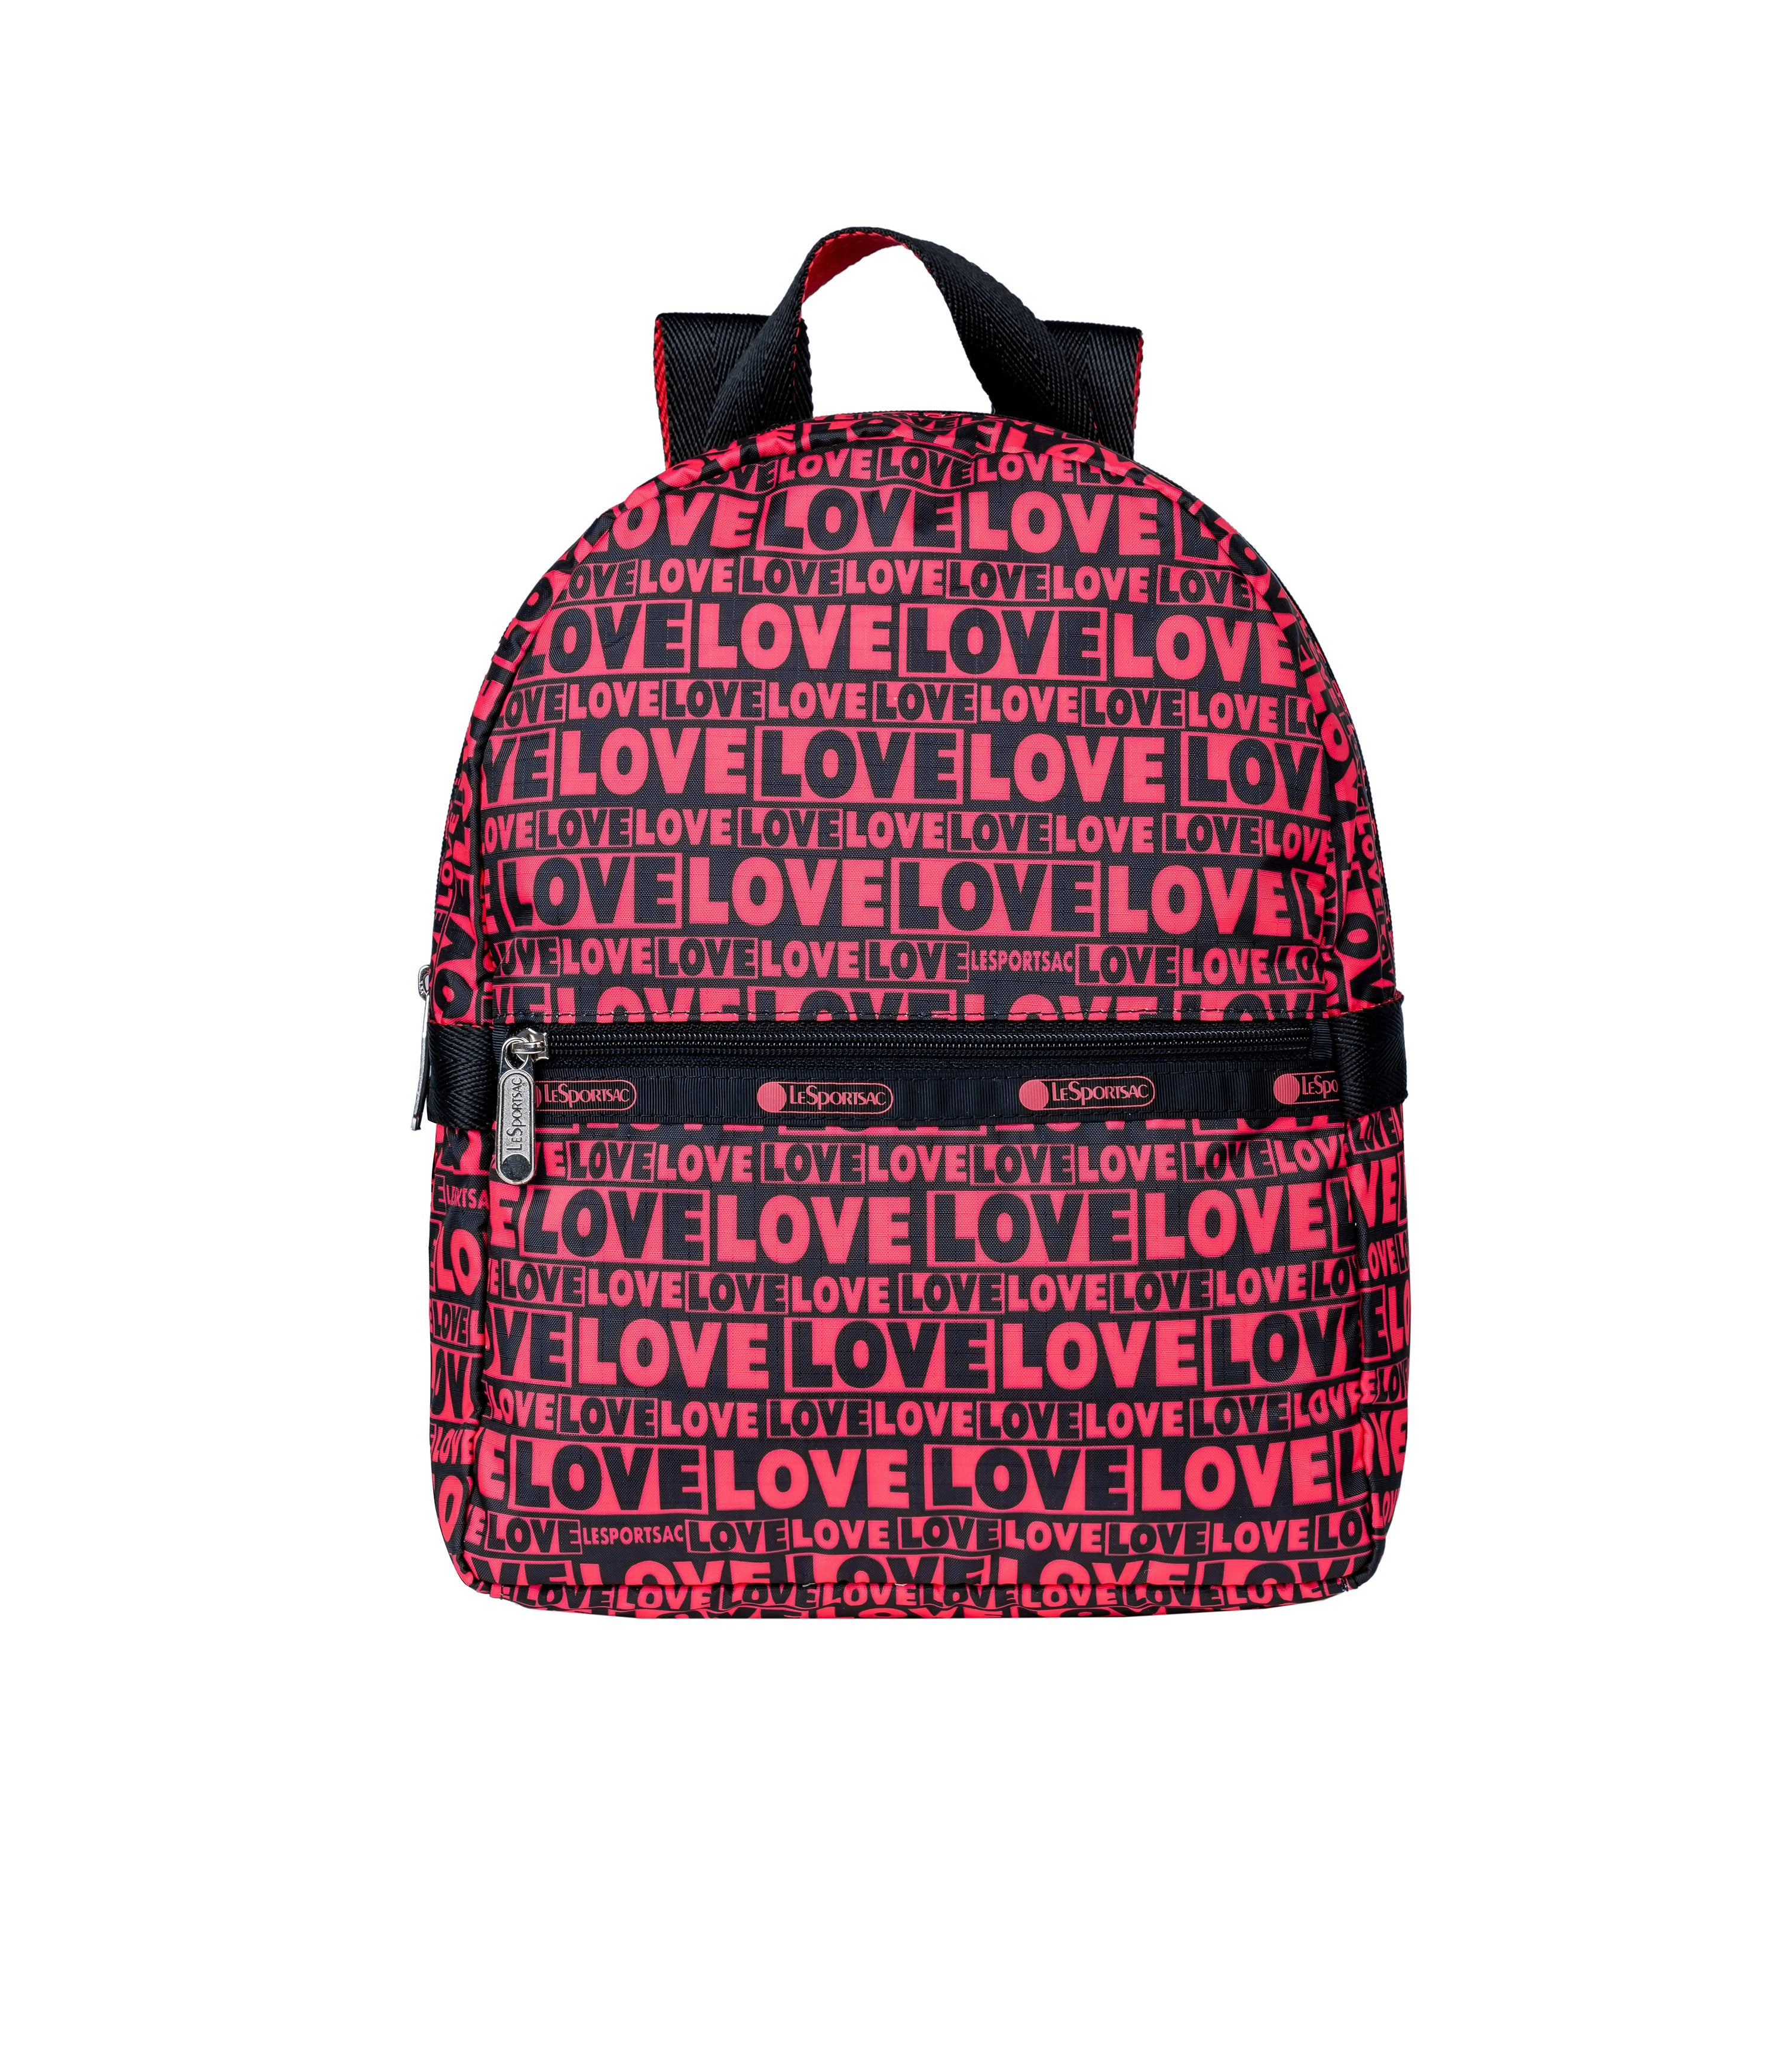 LeSportsac - Backpacks - Small Carrier Backpack - Only Love print